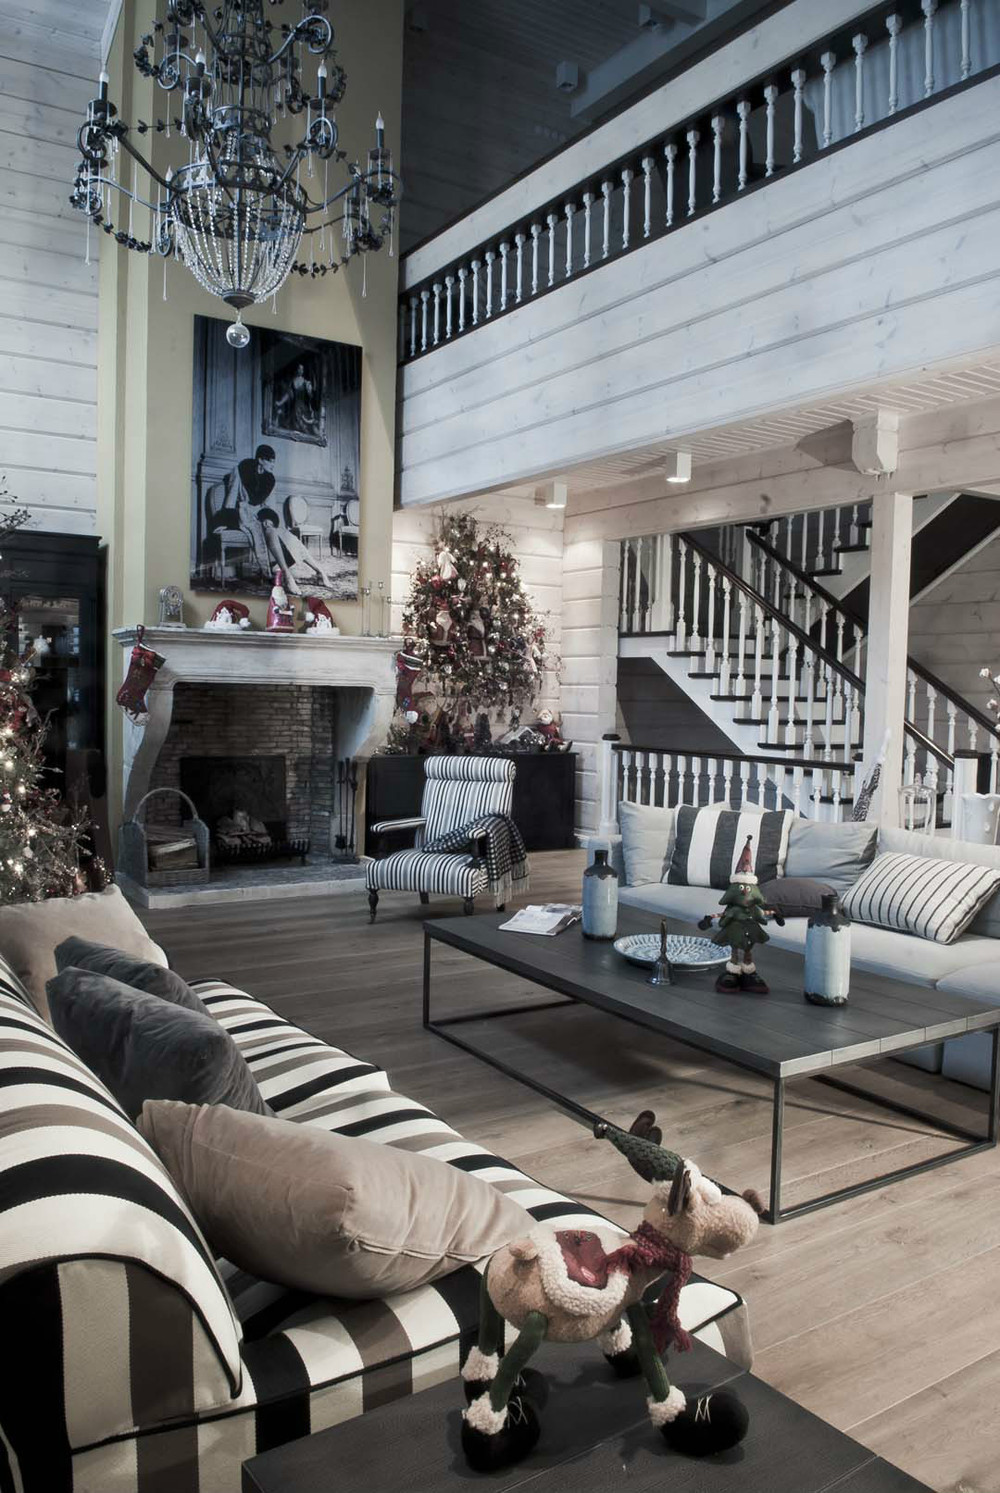 Room And House Decor Pictures: Interior Design Ideas